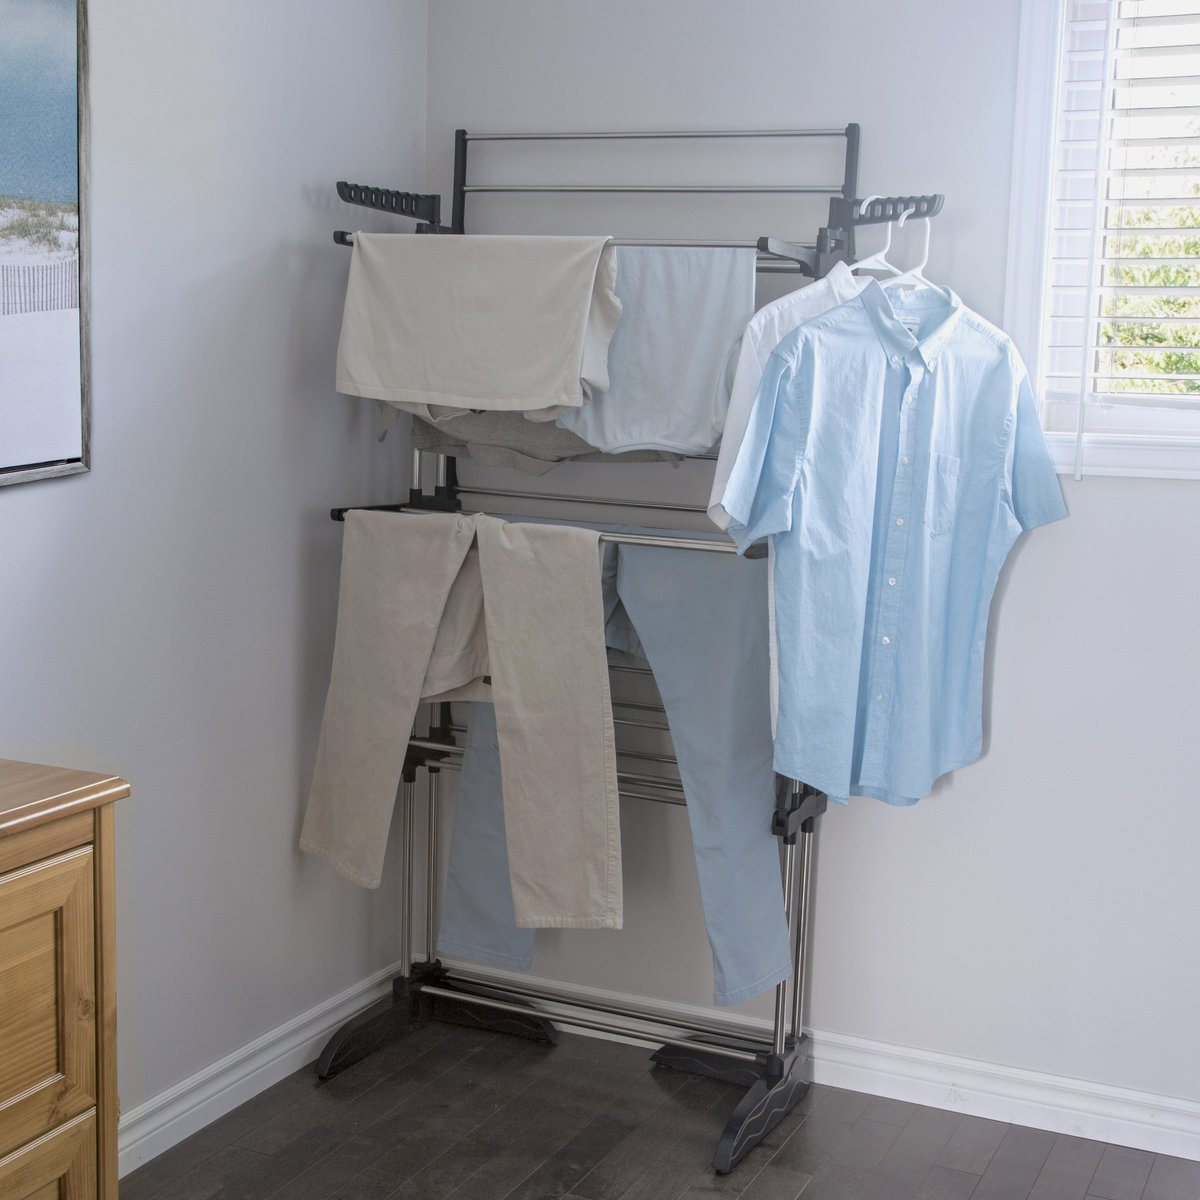 Utilize vertical space to dry your clothes with the GFR6000SS Greenway Collapsible Vertical Drying Rack. Featuring 6 shelves that may be folded up and out of the way when not in use, this rack is perfect for making the most out of limited spaces. https://t.co/oVjYuFCjAA https://t.co/GZa5OEEHAa